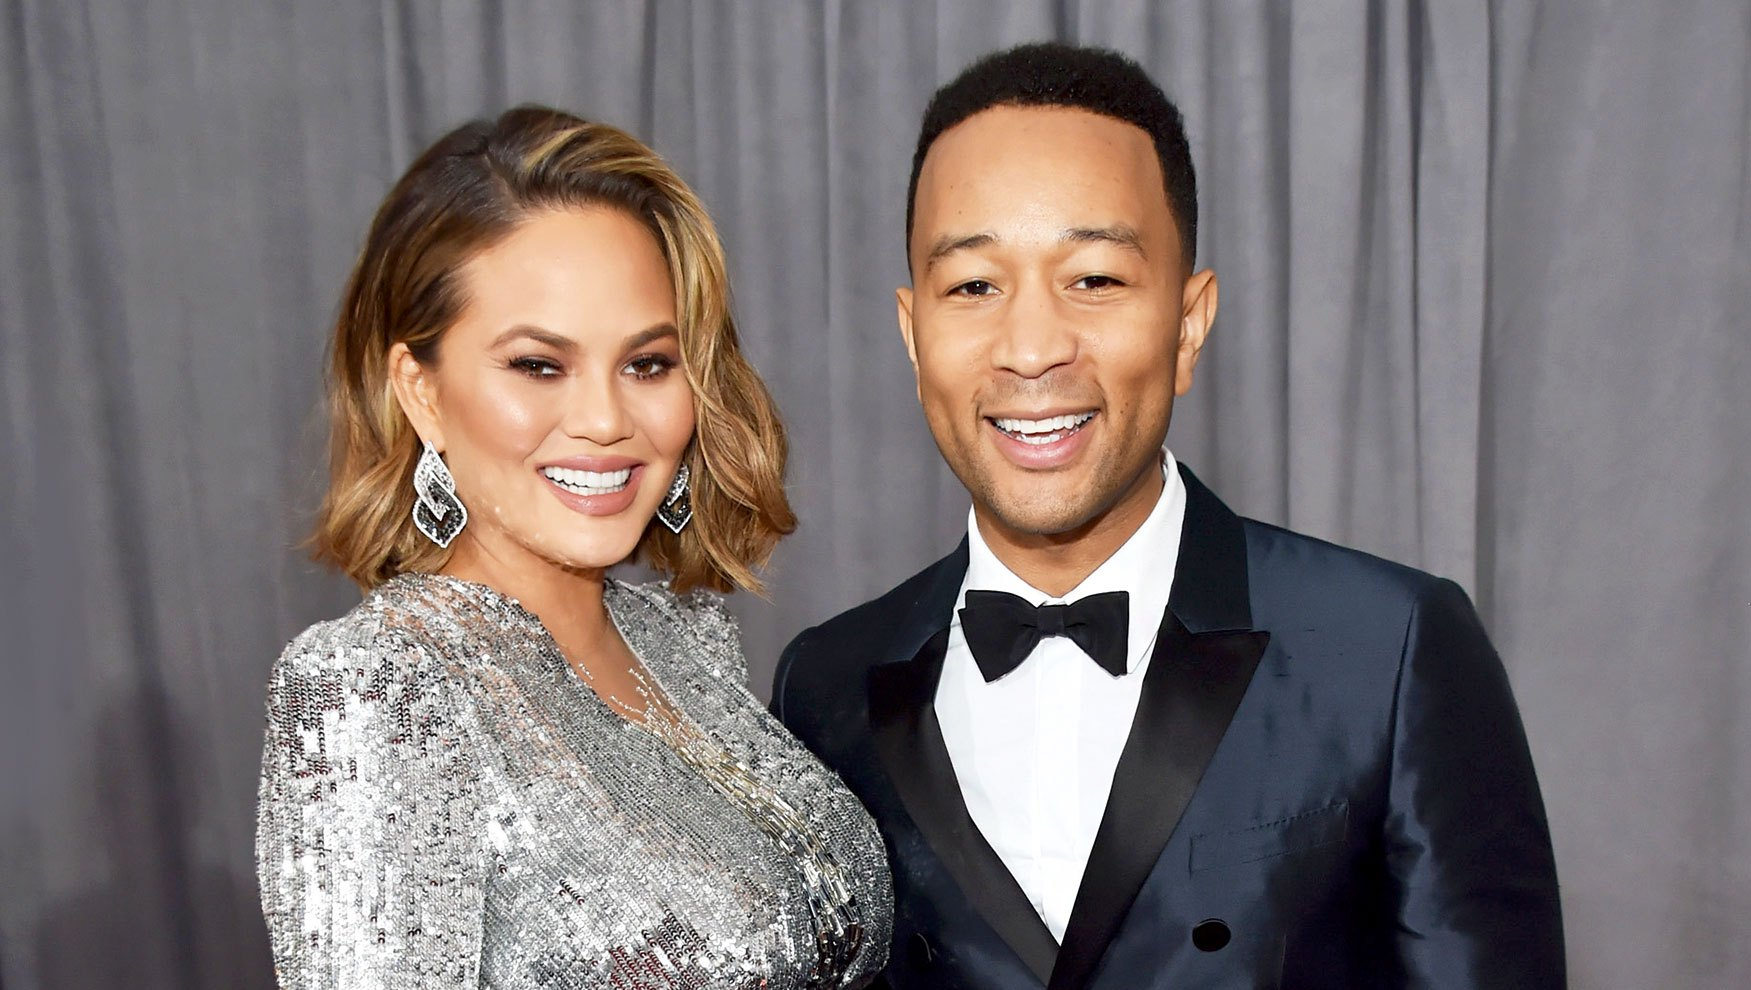 Chrissy Teigen and John Legend attend the 60th Annual Grammy Awards at Madison Square Garden on January 28, 2018 in New York City.